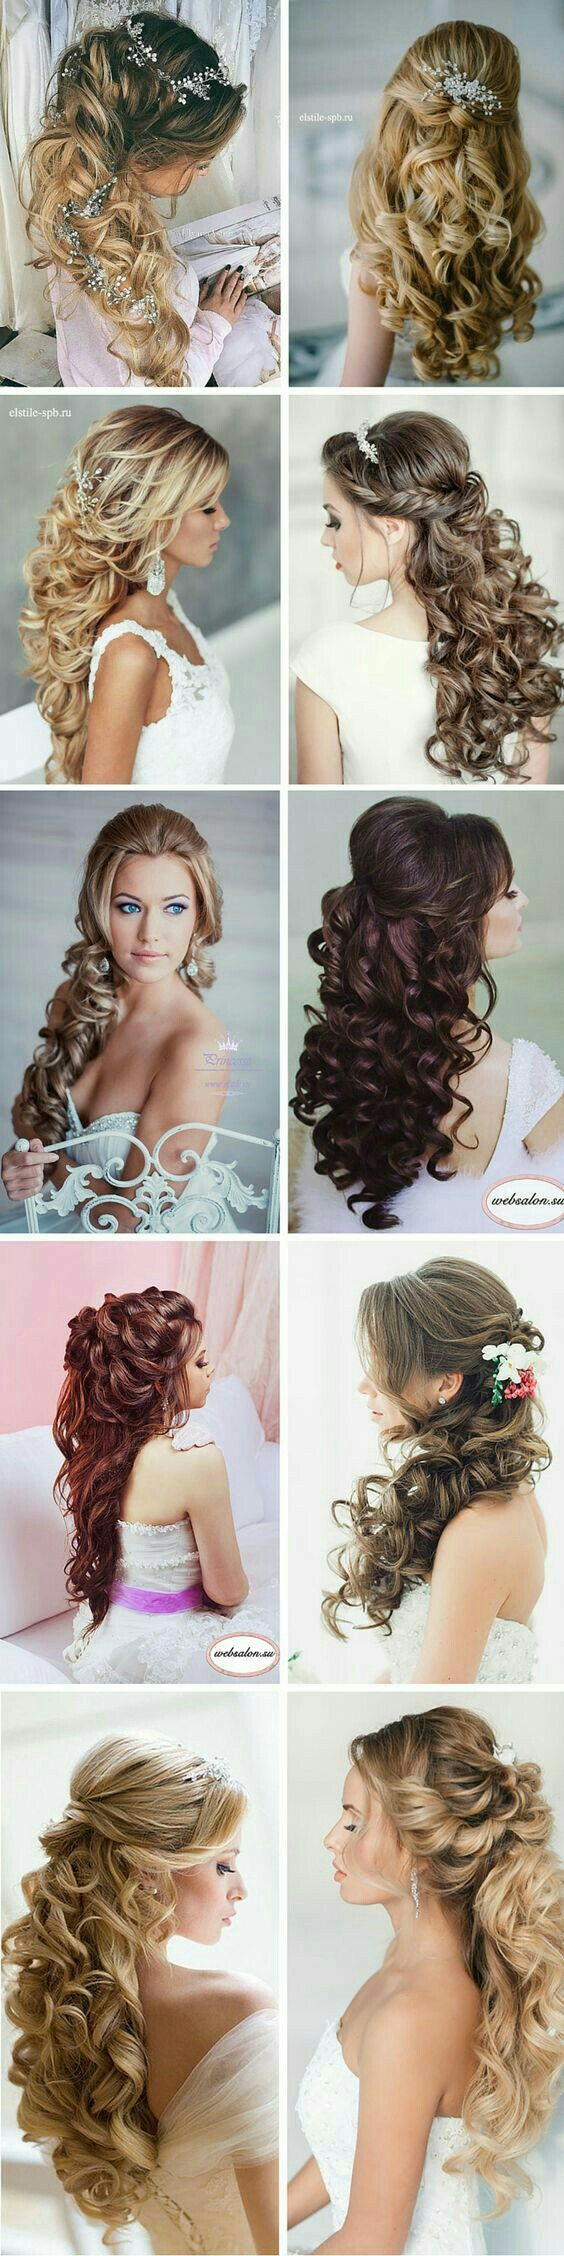 Wedding hairstyle wedding pinterest wedding hairstyles